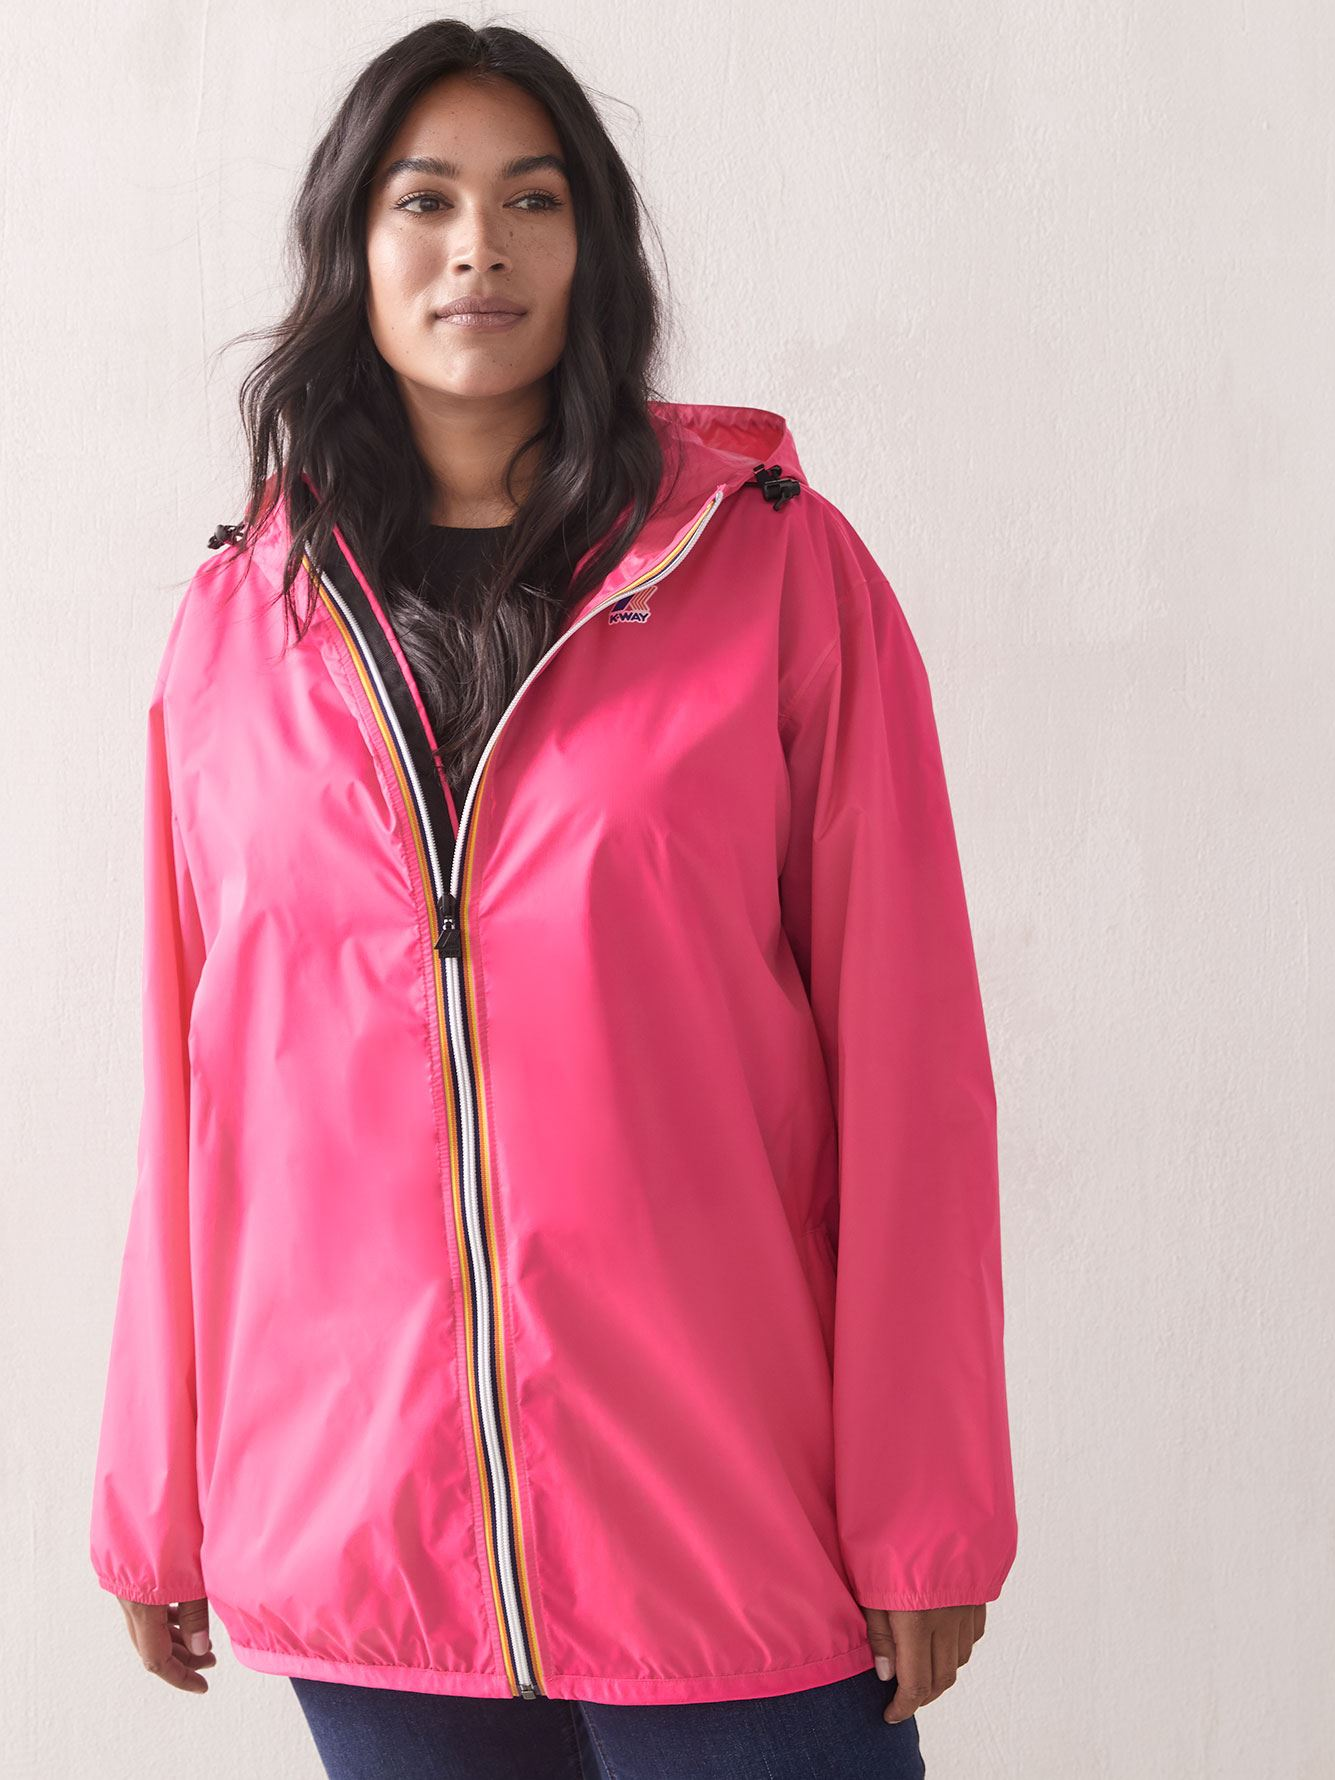 Le Vrai Claude 3.0 Packable Raincoat - K-Way